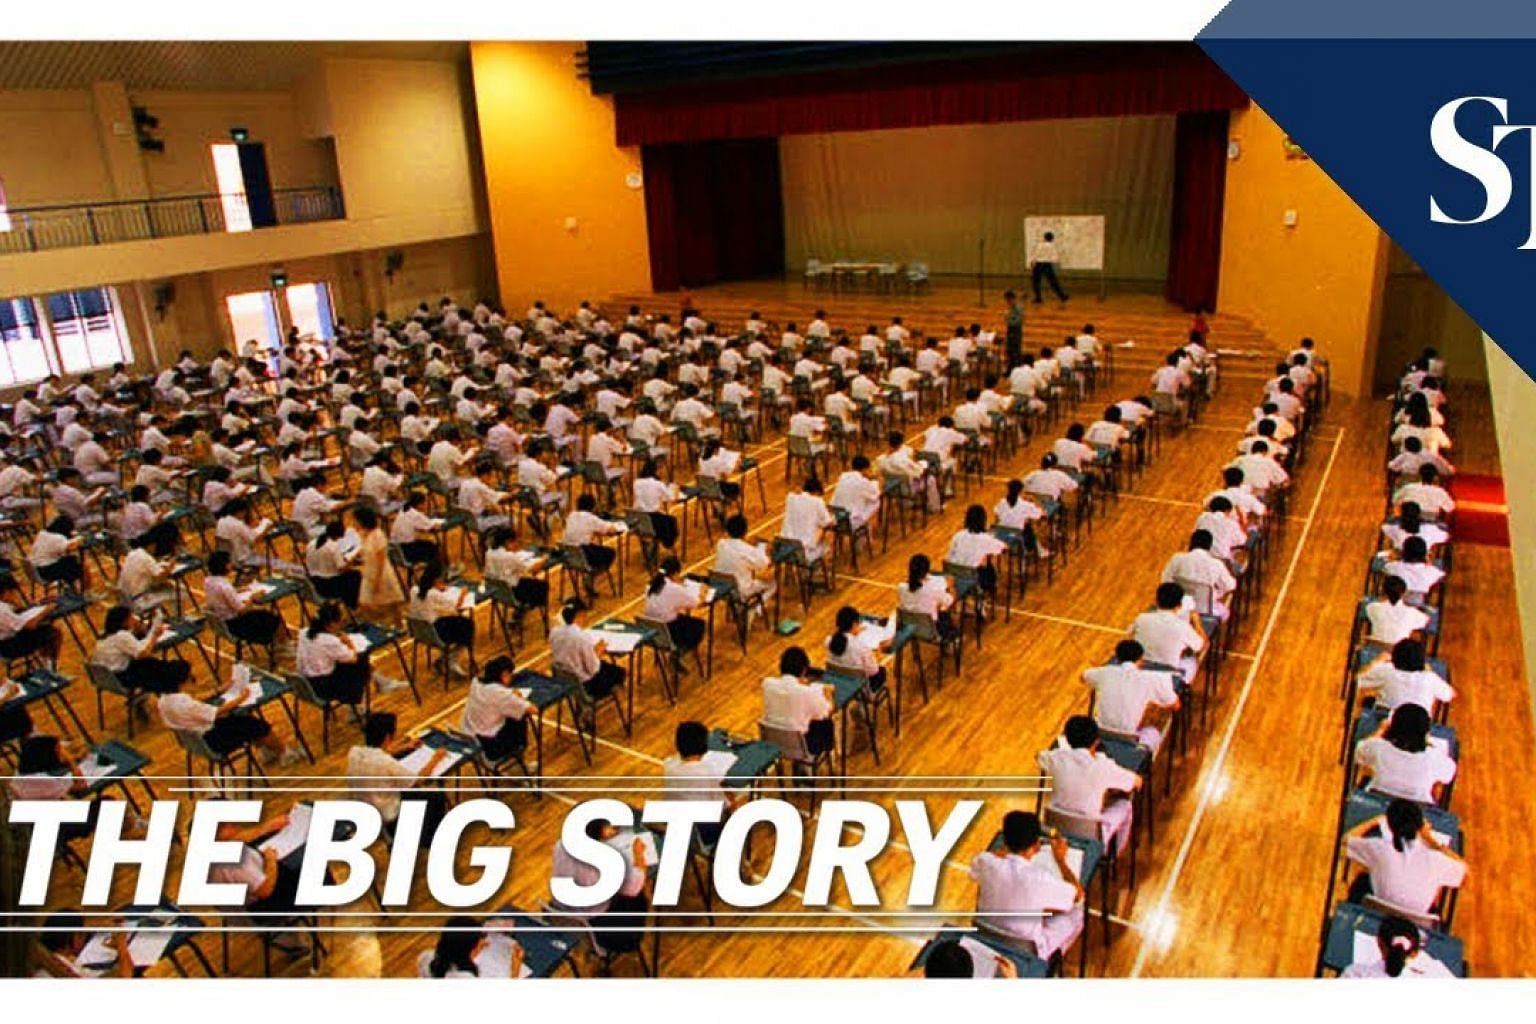 THE BIG STORY: 'Exceptionally difficult' PSLE maths paper | The Straits Times